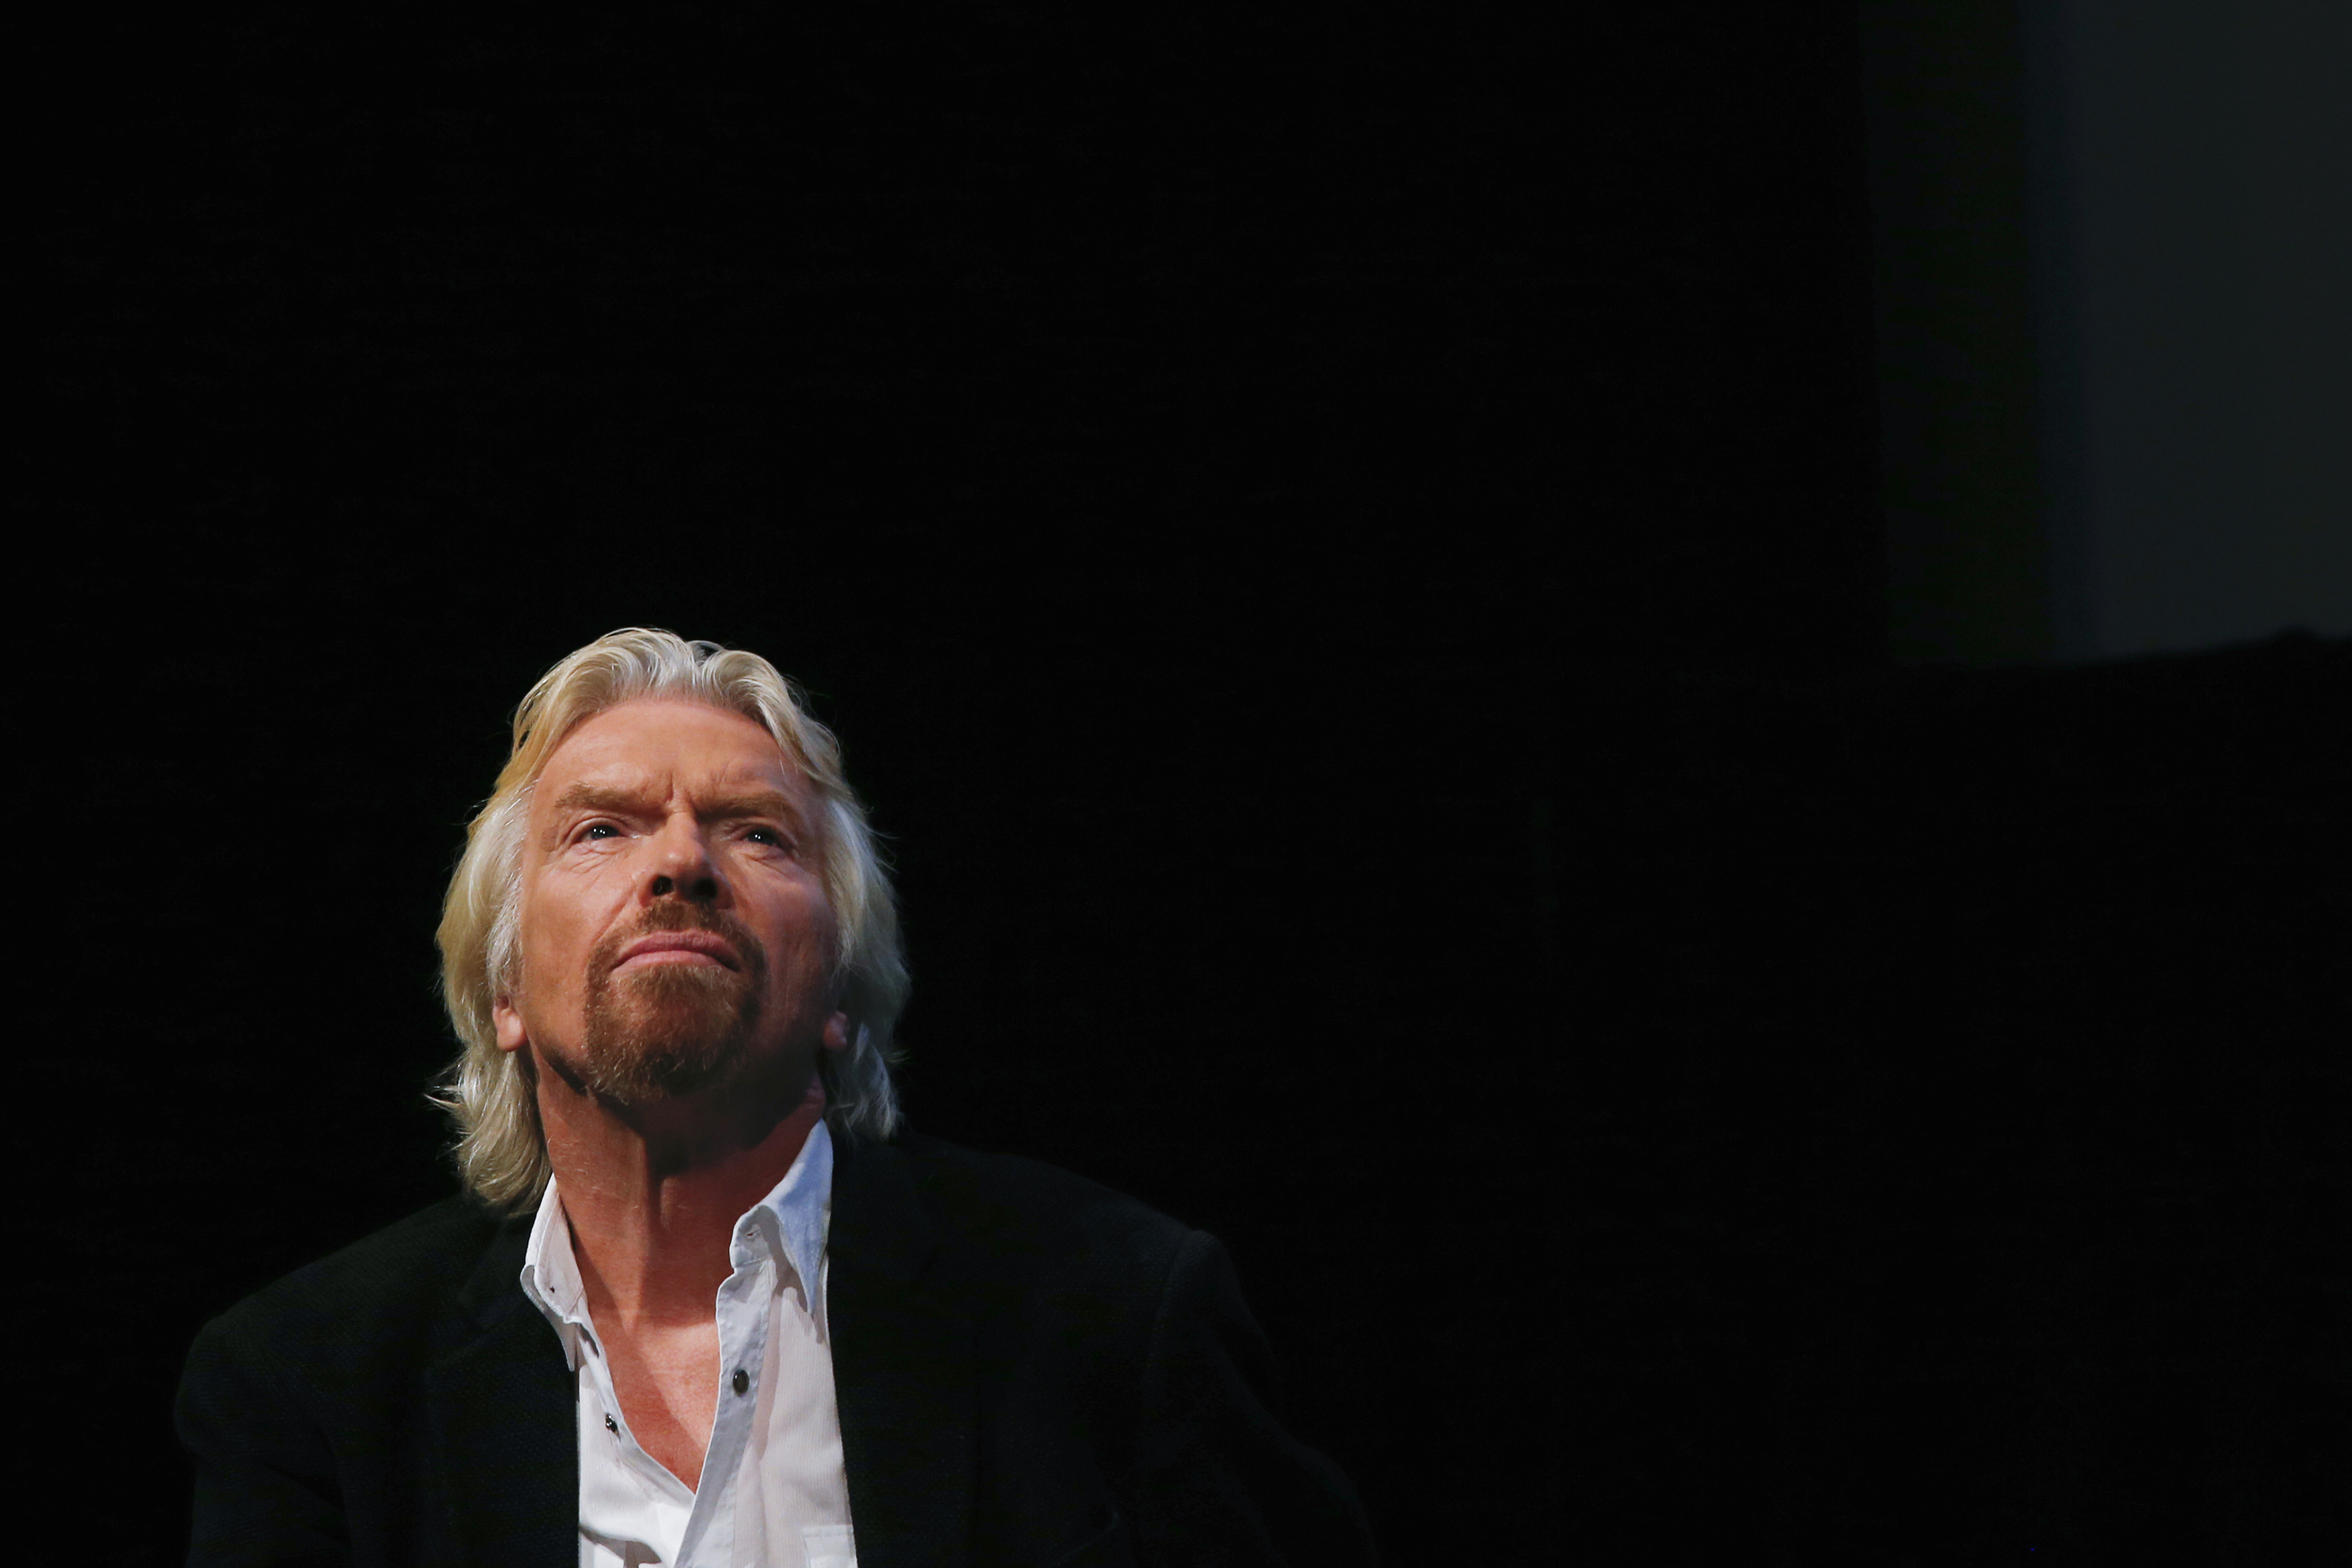 Sir Richard Branson listens to a speaker at the Global Commission on Drug Policy in New York